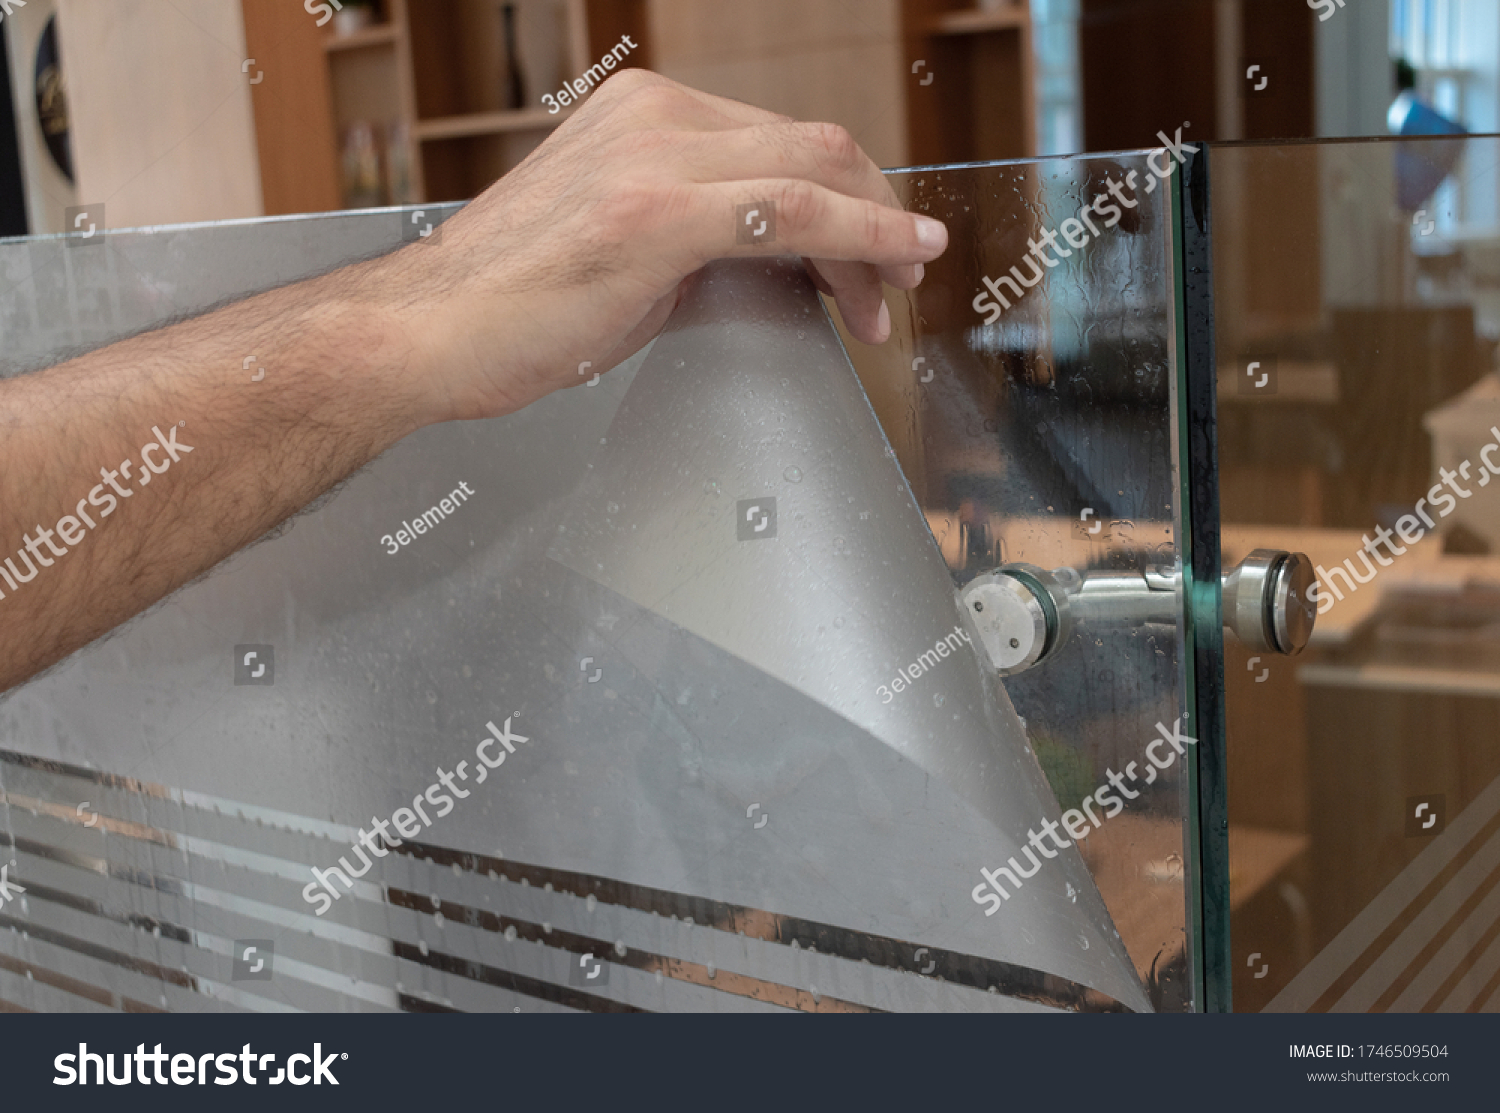 Frosted window film application detail close-up. Skilled men's hand #1746509504